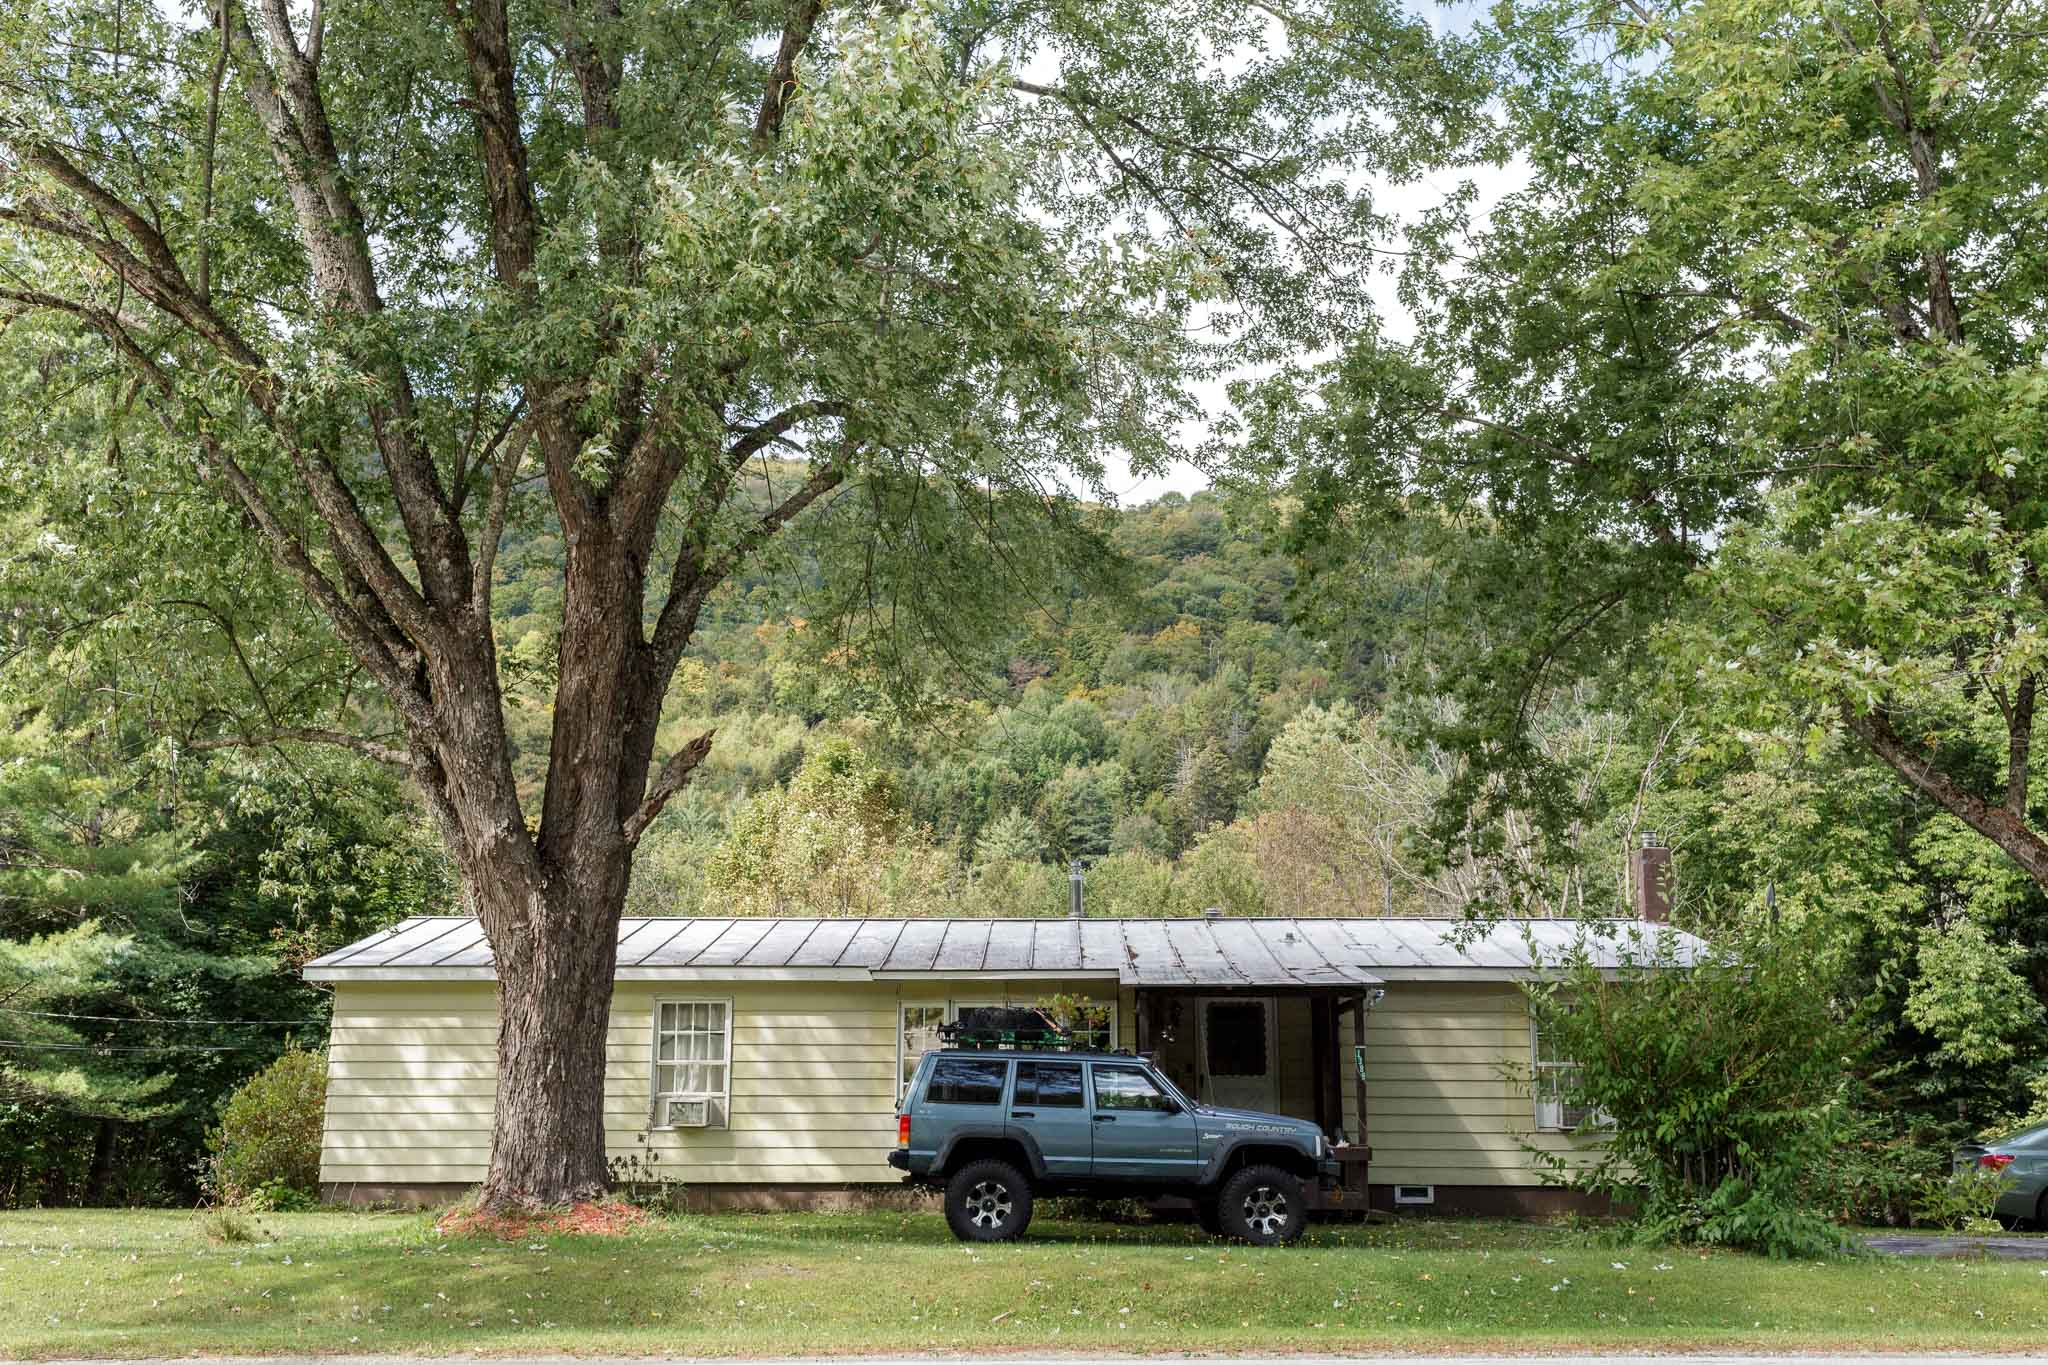 Trees, House, and SUV